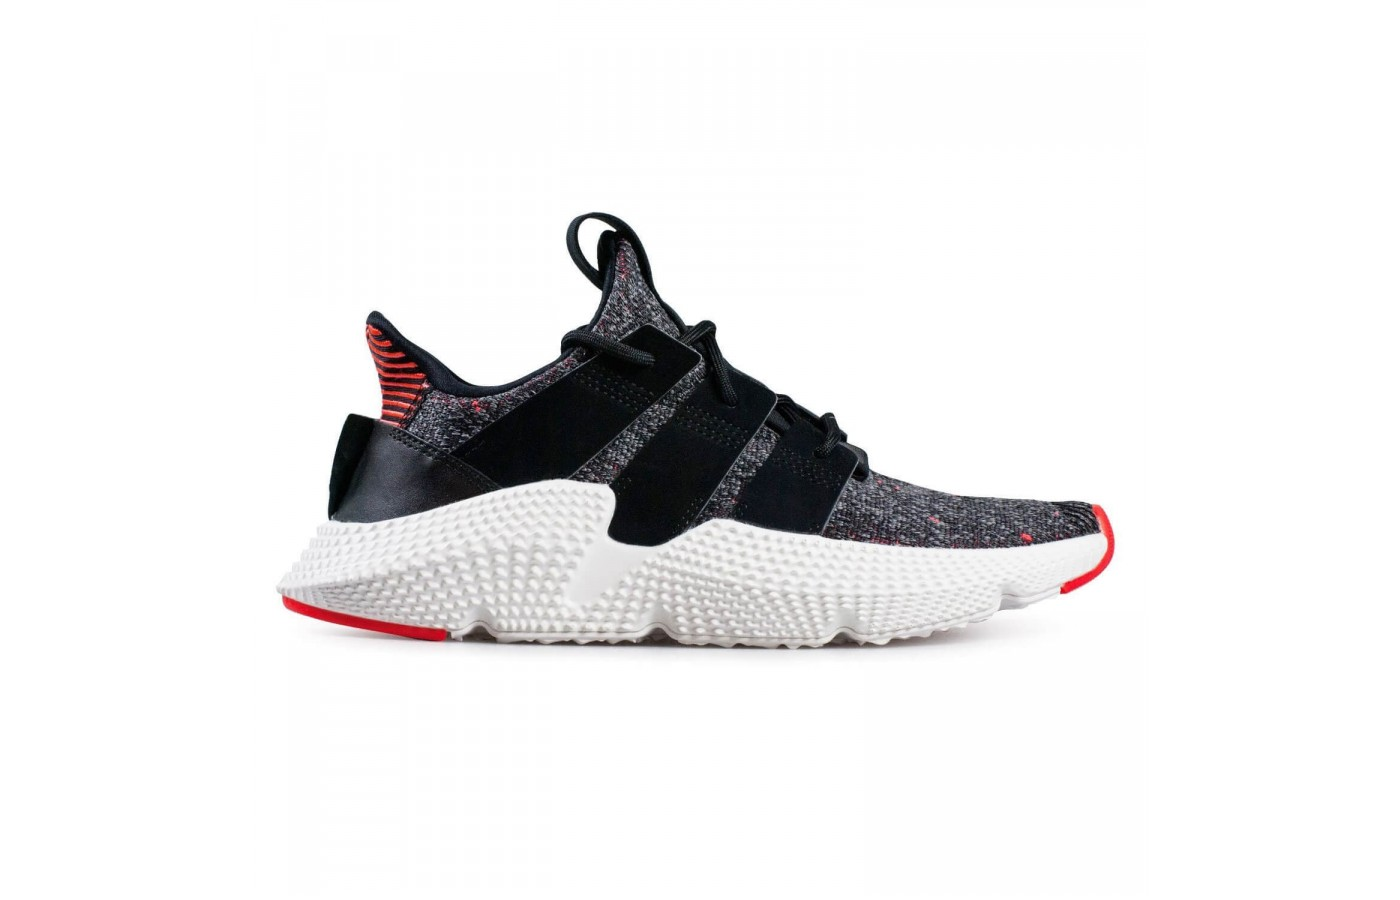 Adidas Prophere Reviewed - To Buy or Not in Apr 2019  d0983b0a4